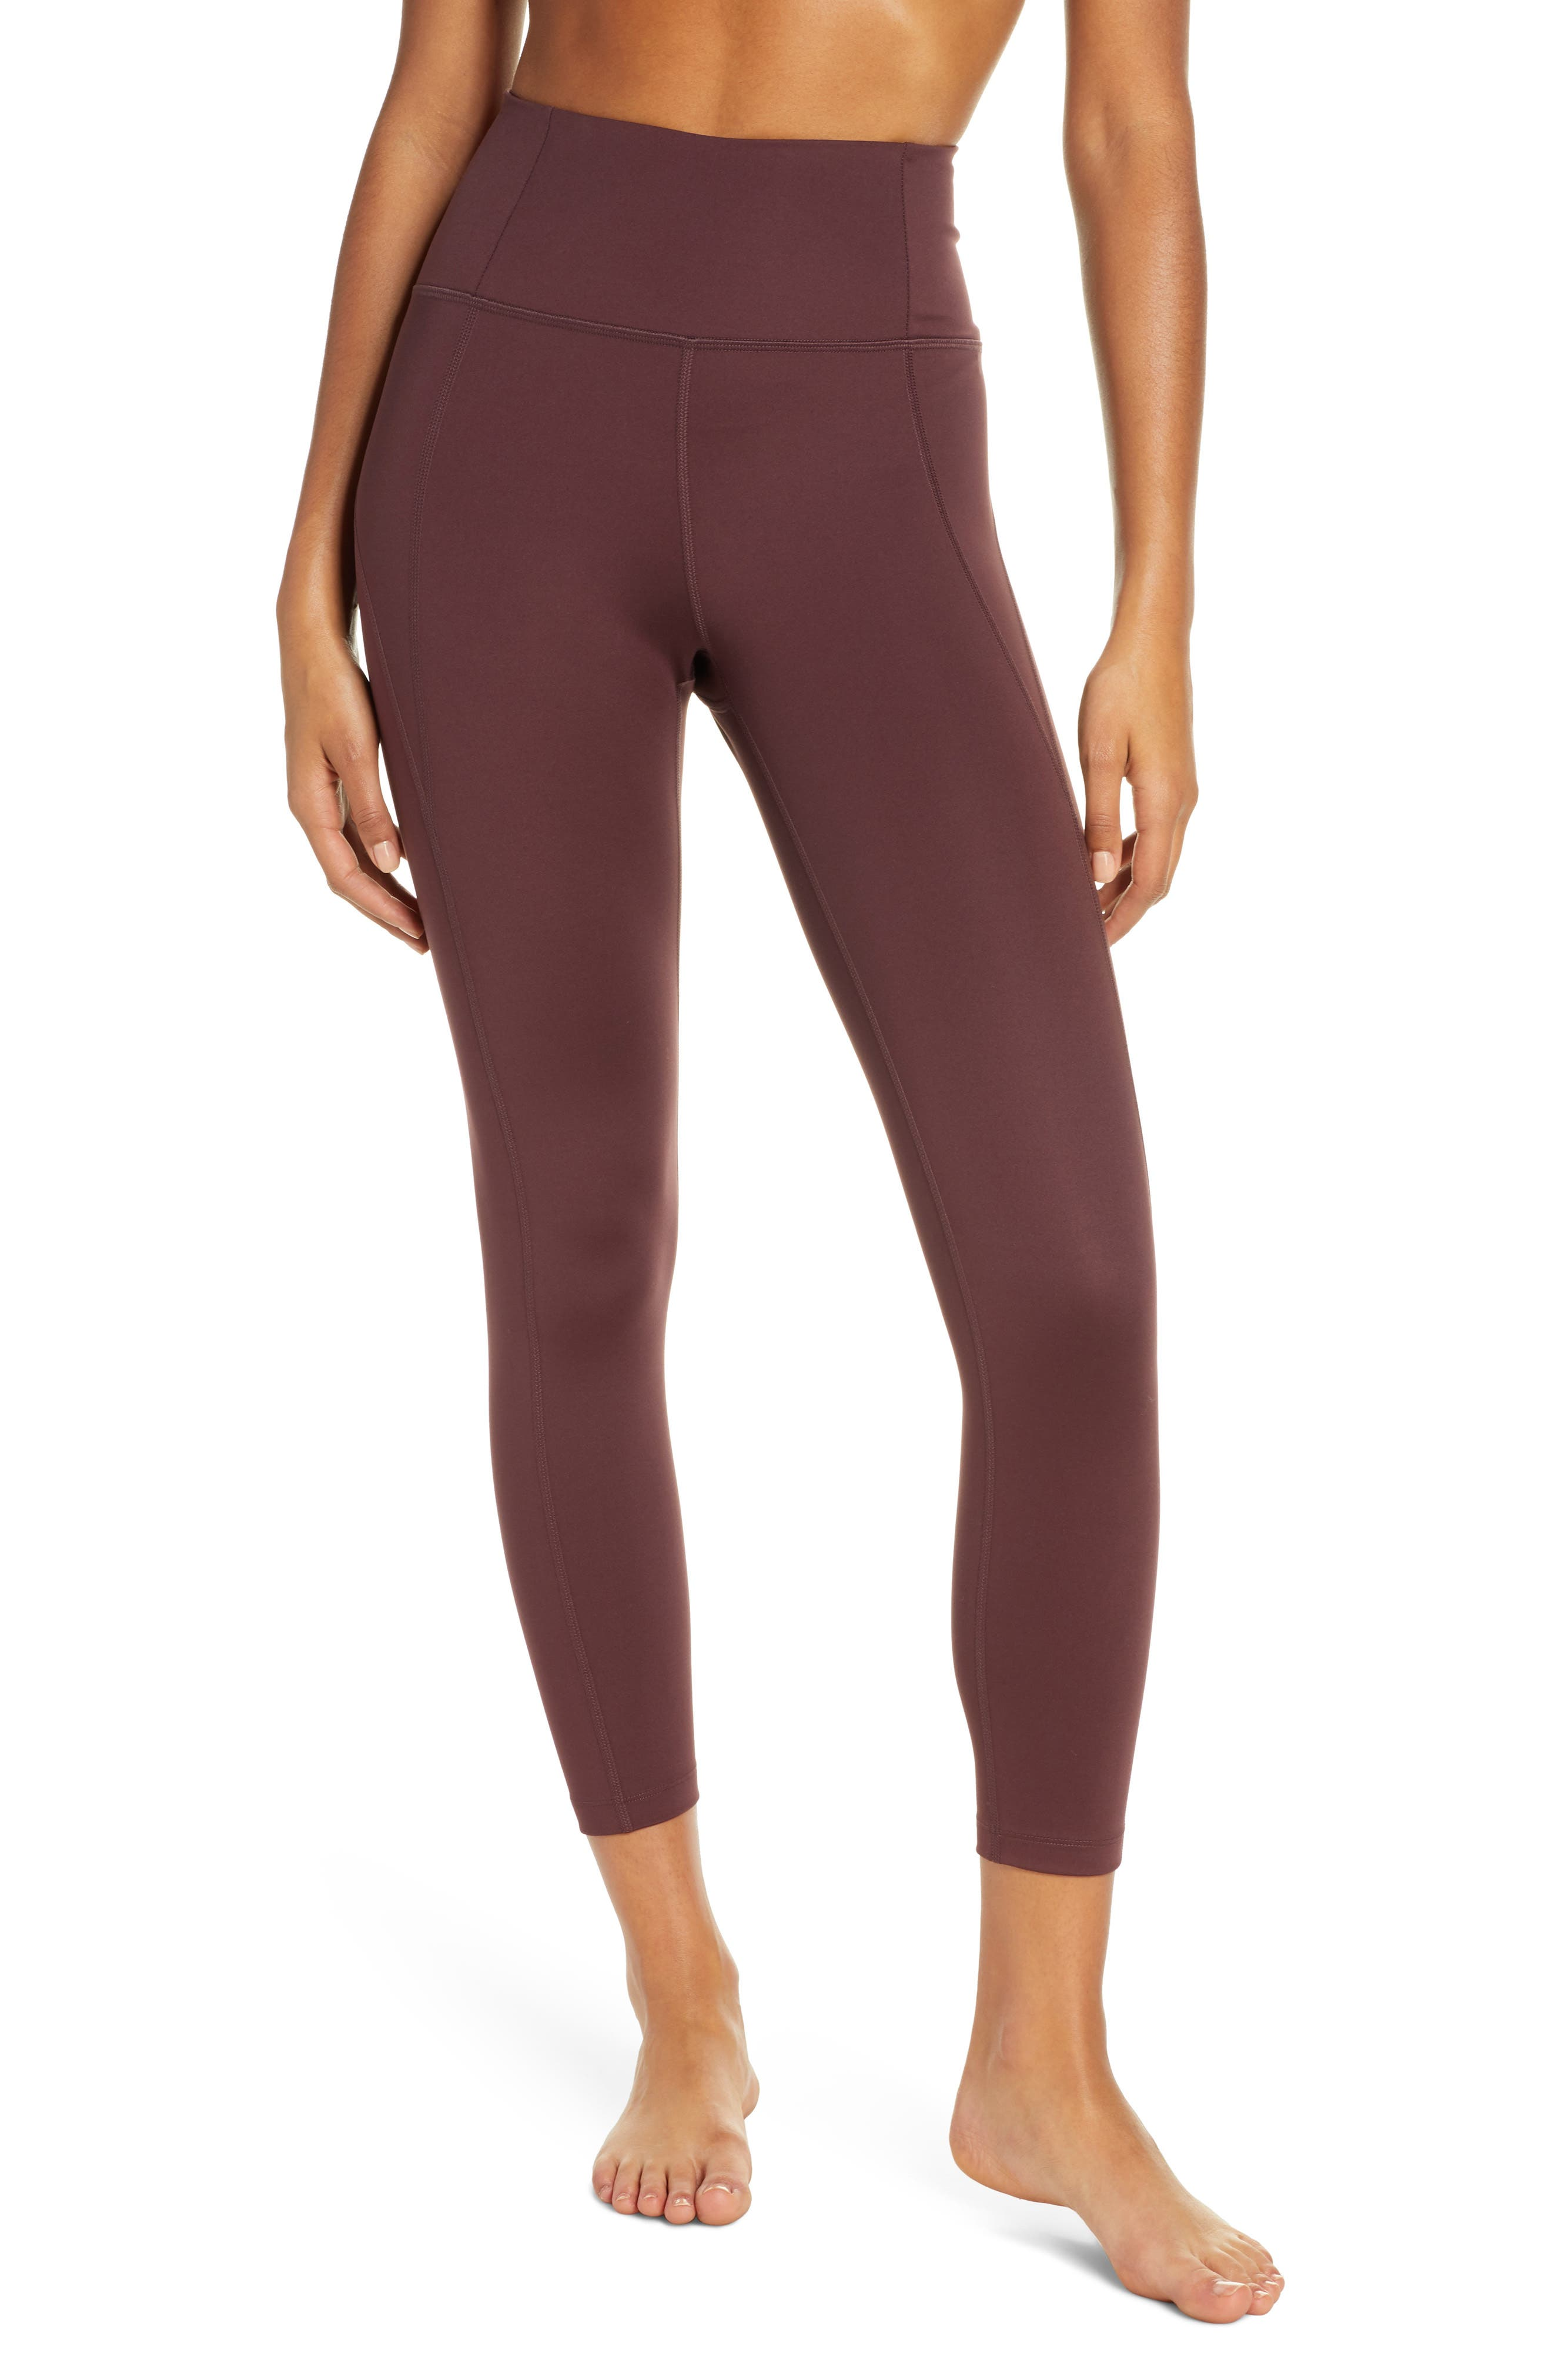 Girlfriend Collective High Waist 7/8 Leggings, Brown